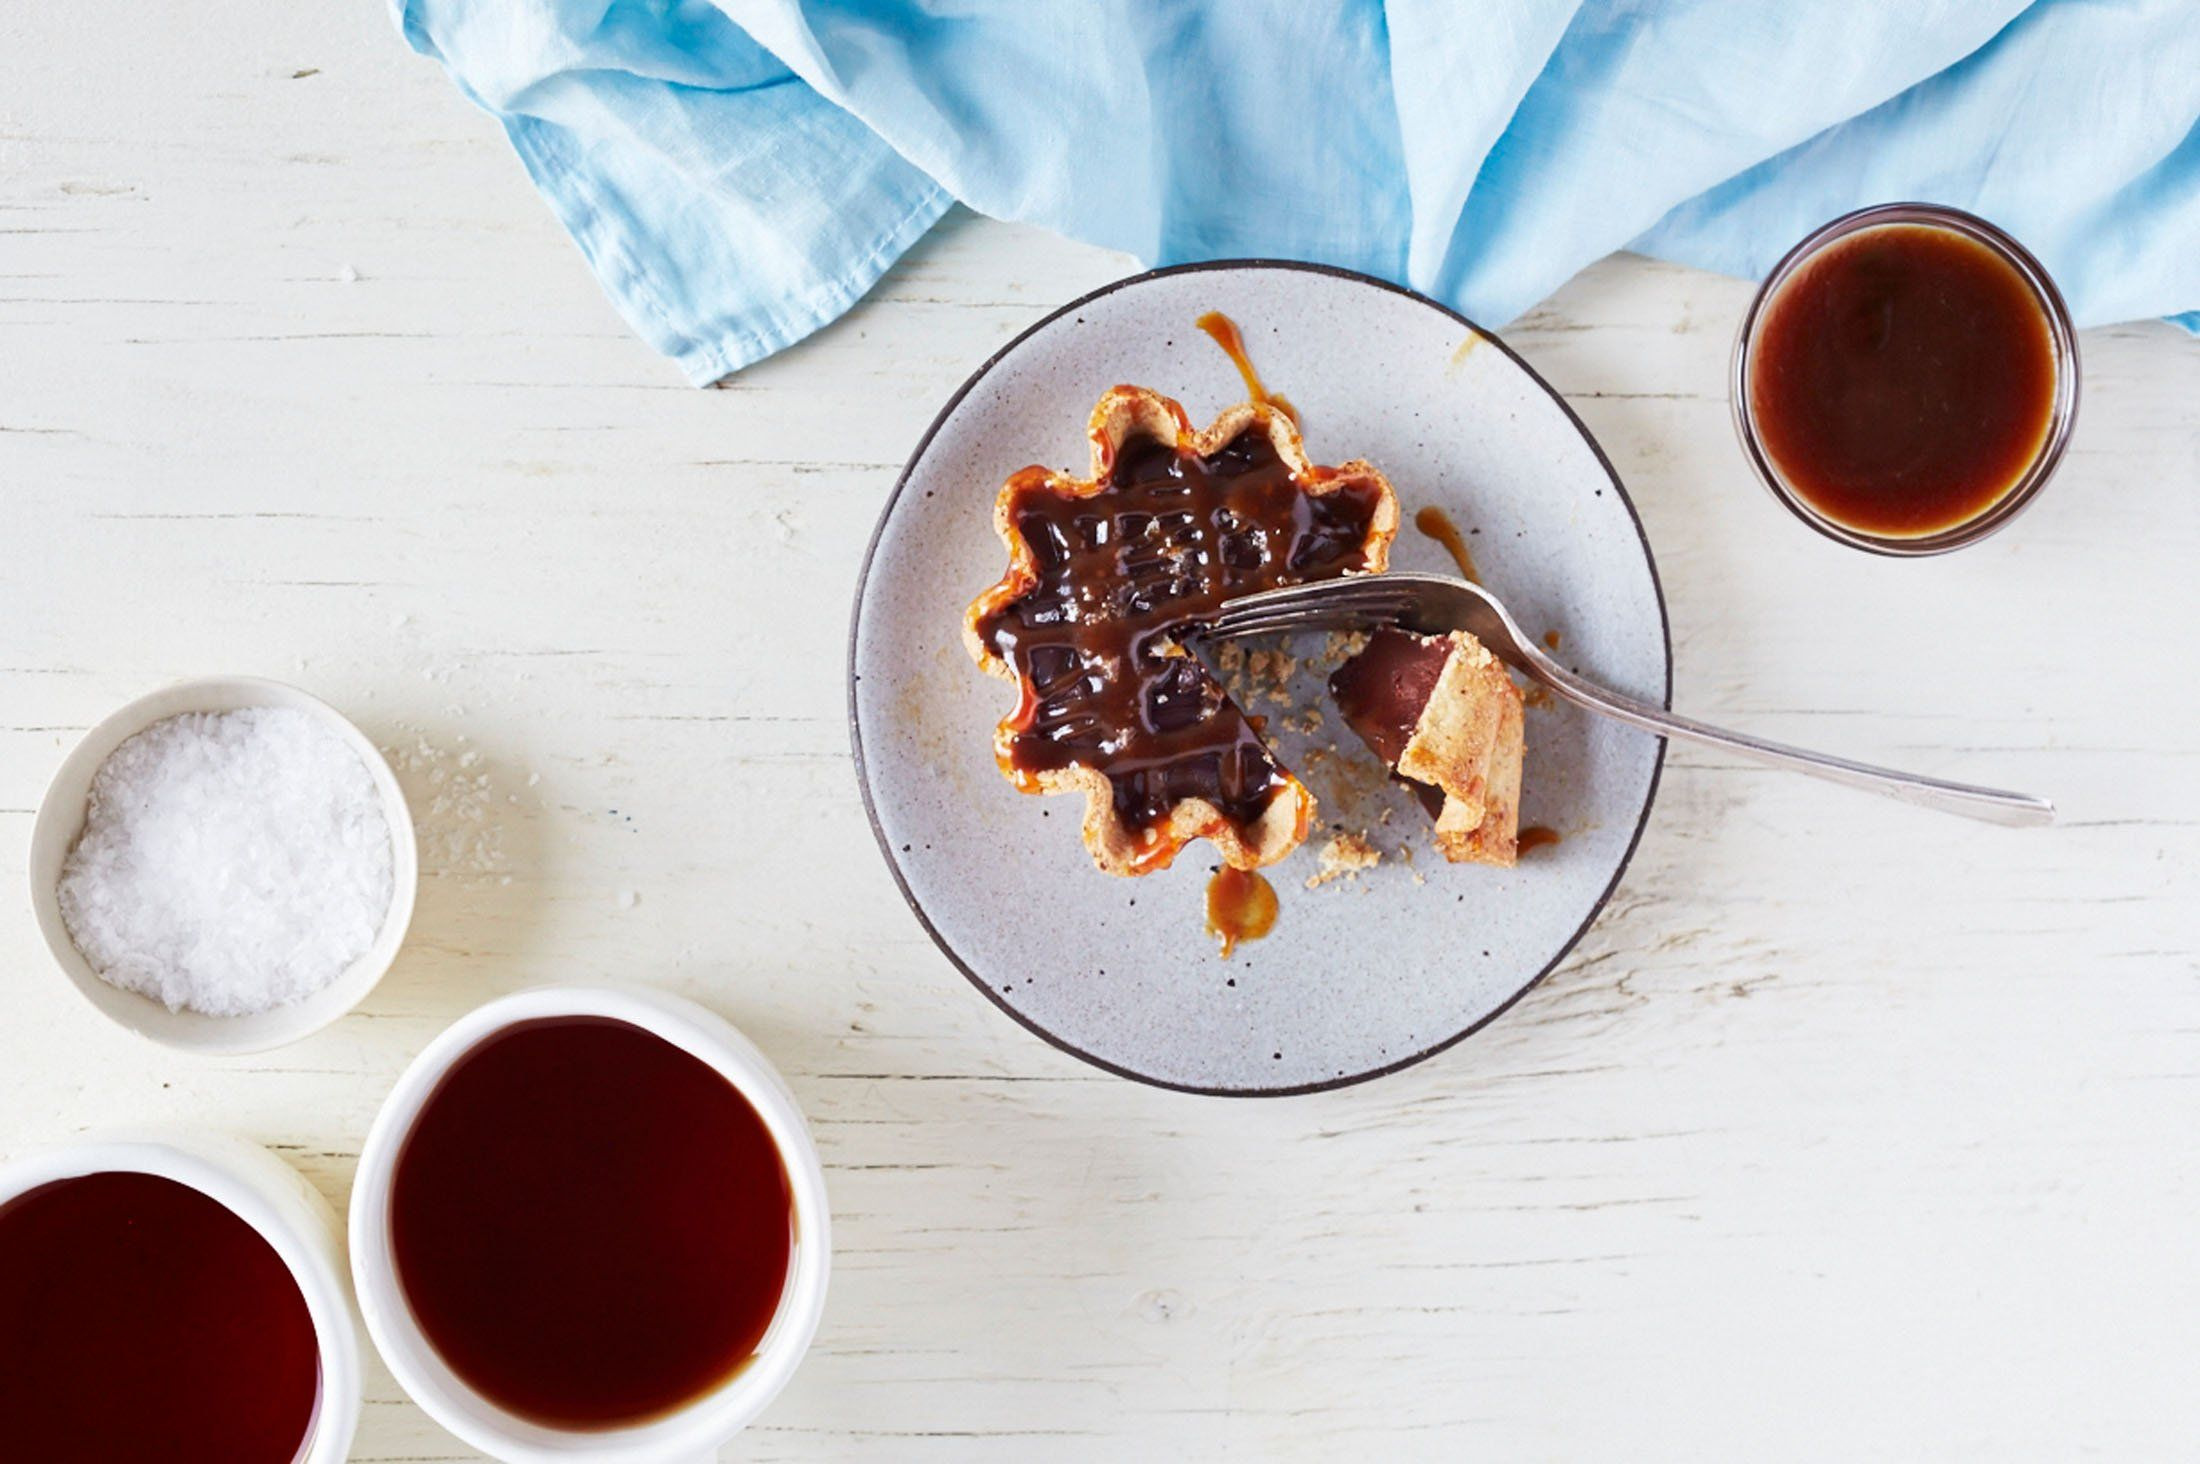 DECADENT GLUTEN-FREE DARK CHOCOLATE SALTED CARAMEL TARTLETS